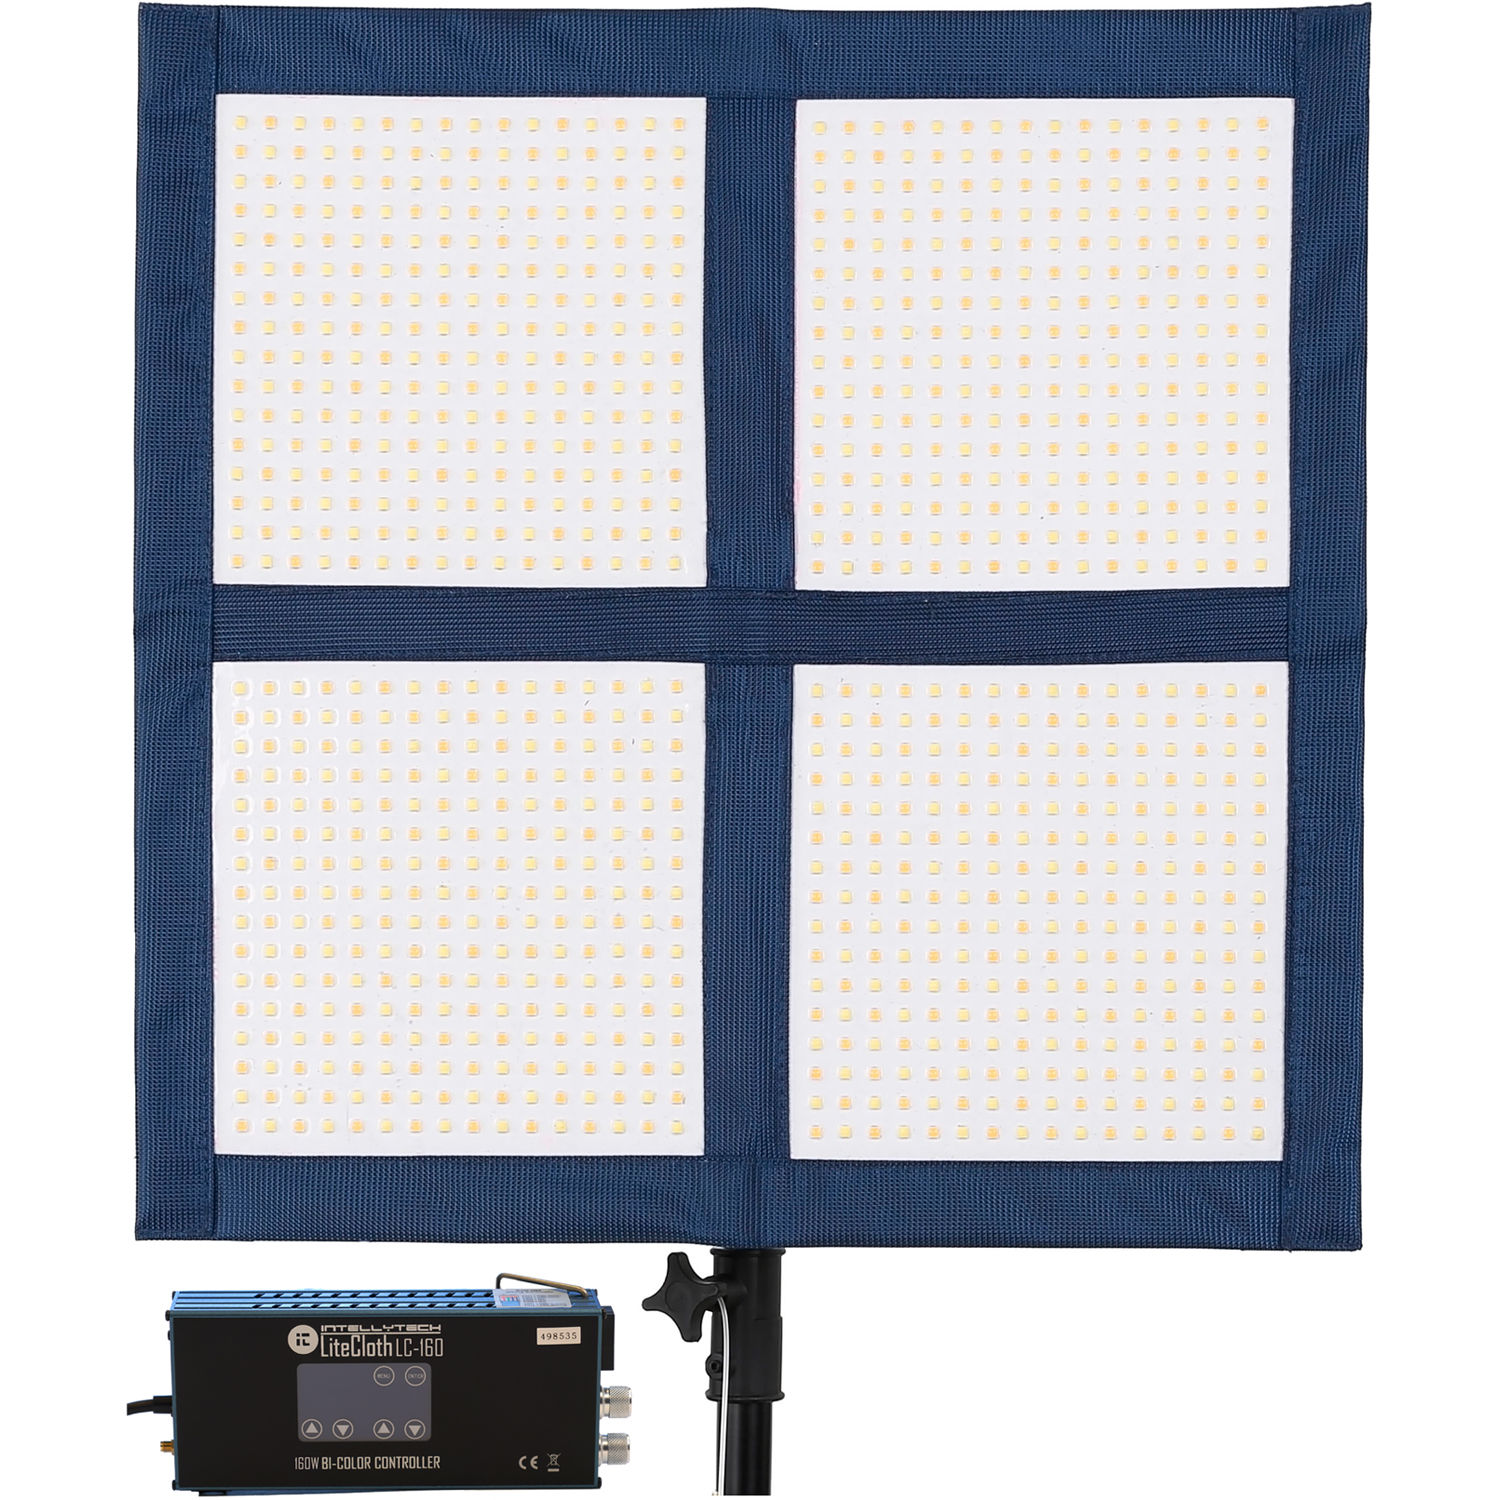 Intellytech Litecloth Lc 160 2 X 2 Foldable Led Mat Kit V Mount